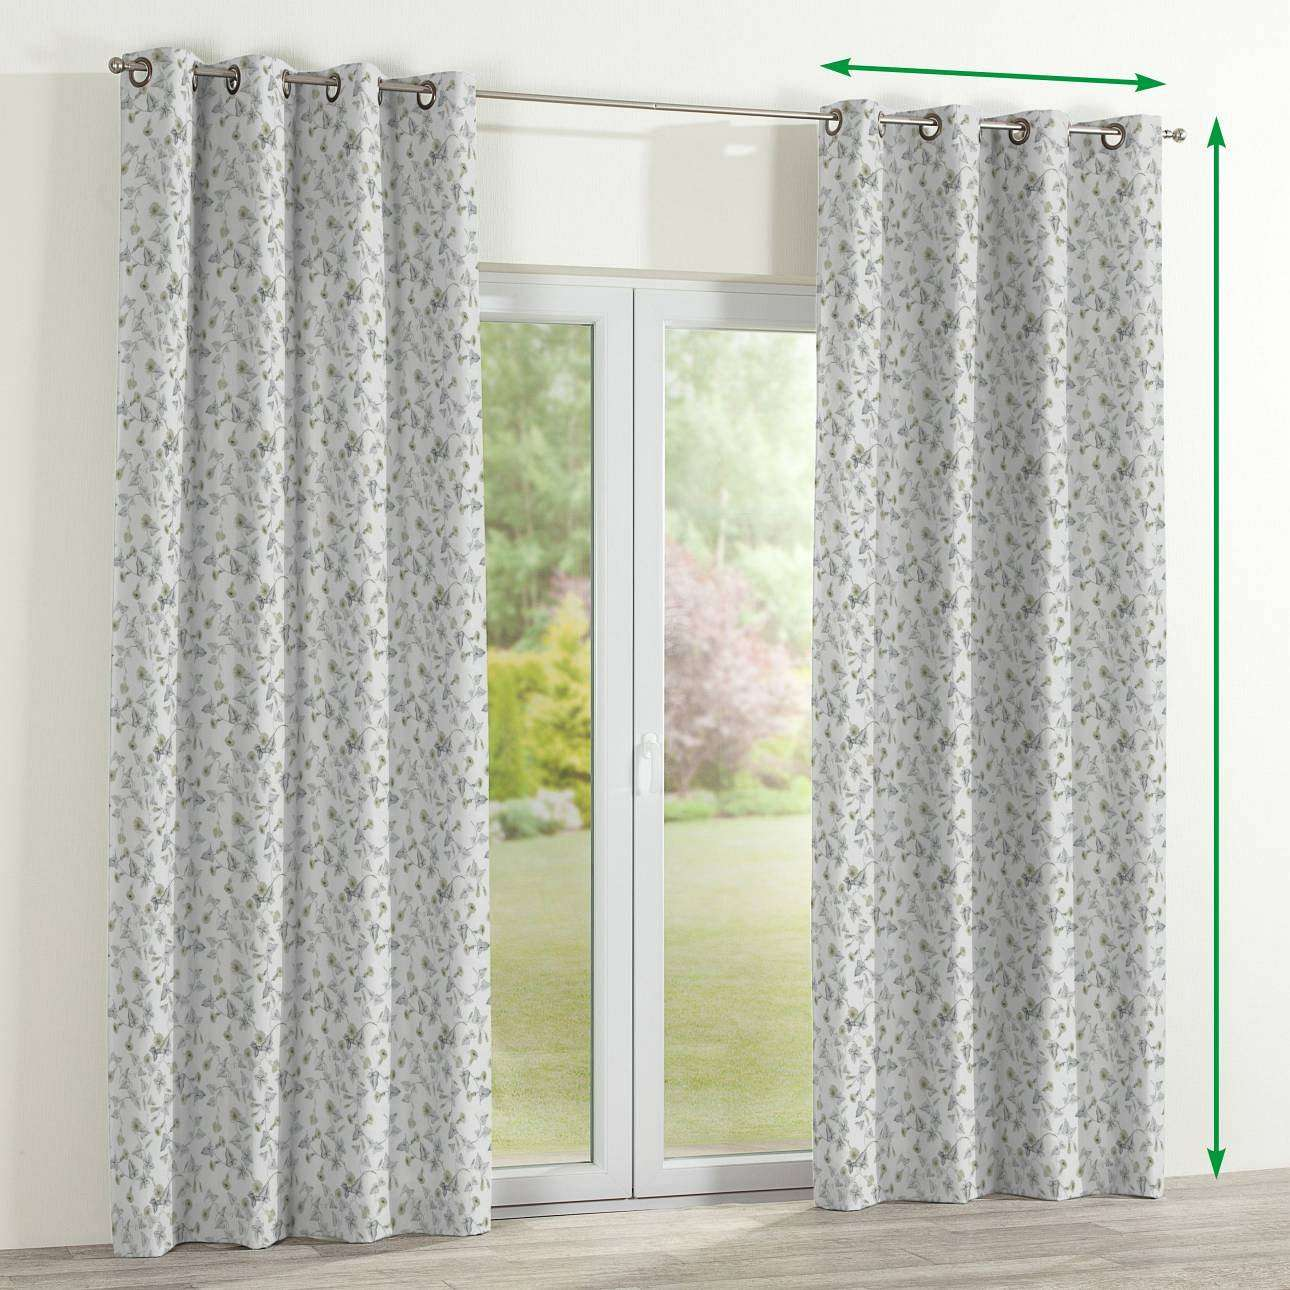 Eyelet curtains in collection Mirella, fabric: 140-42